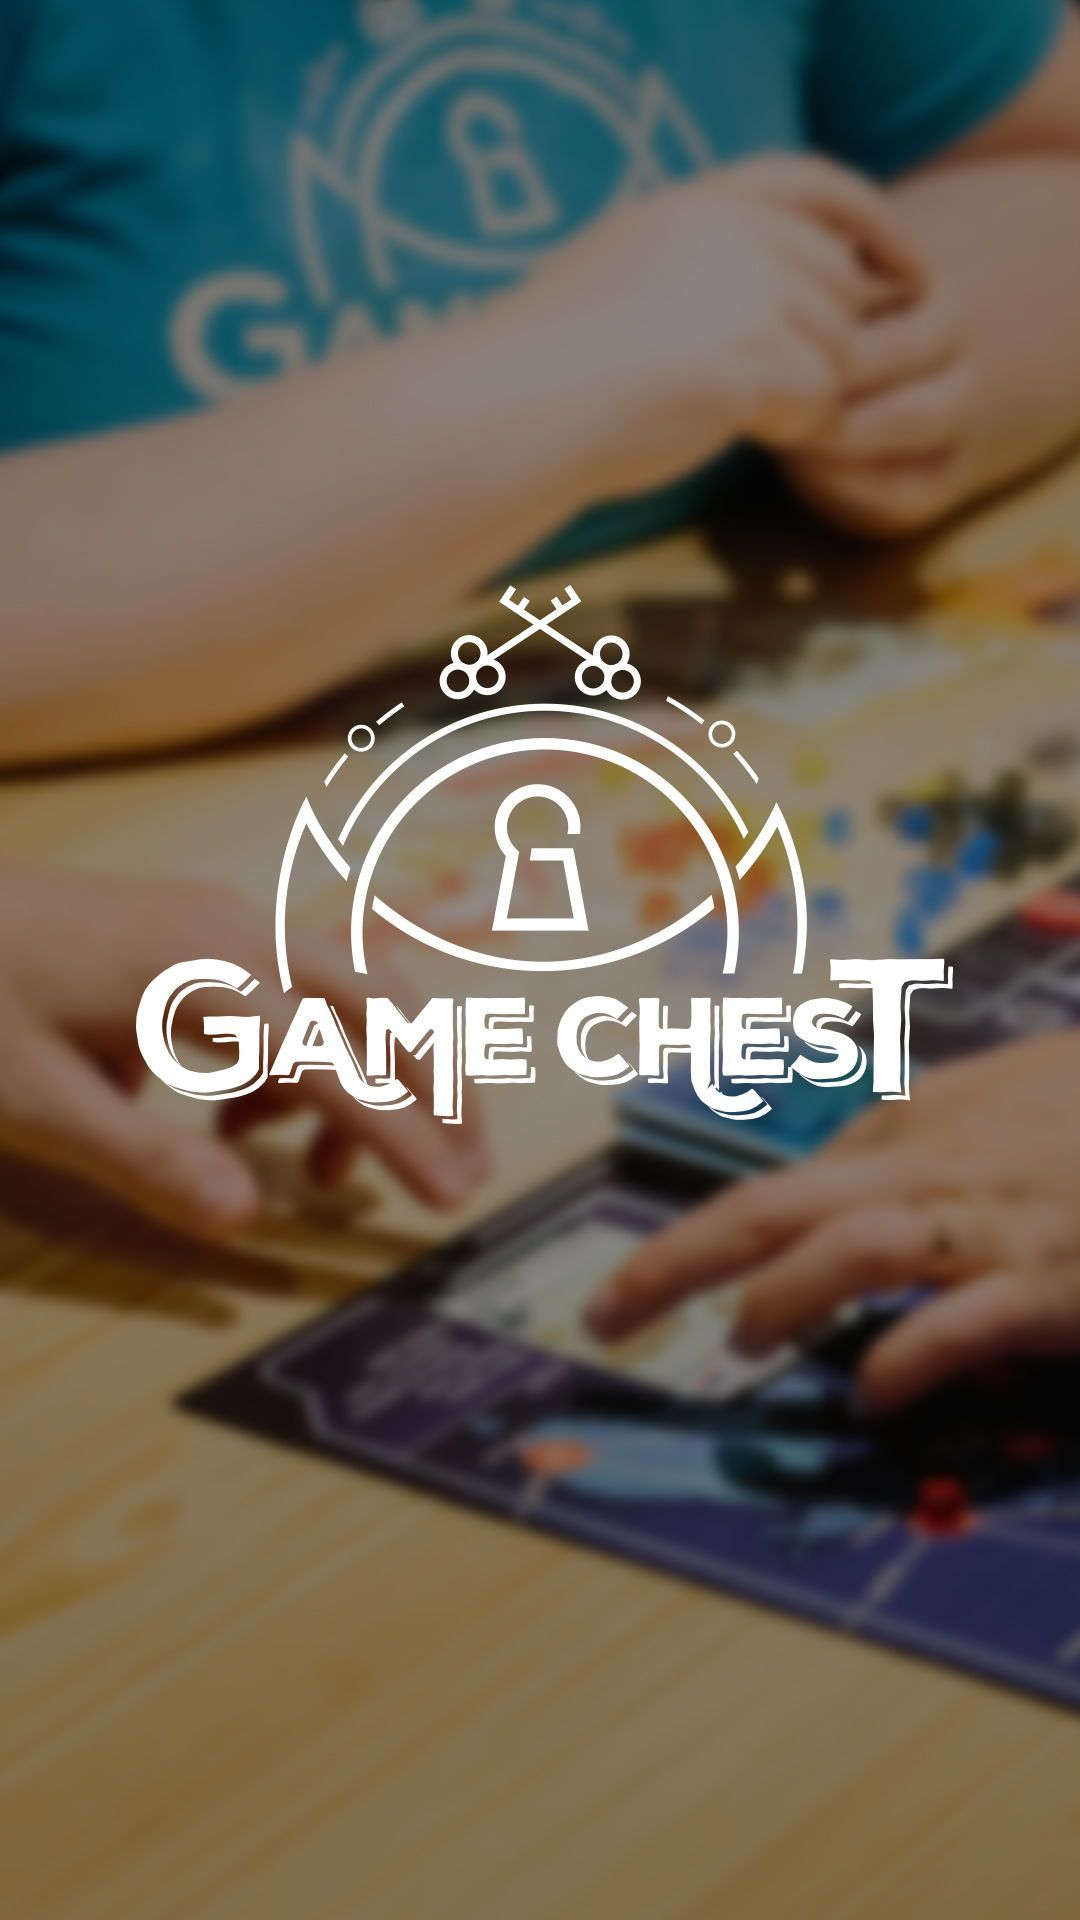 Game chest is a company that promotes family game nights